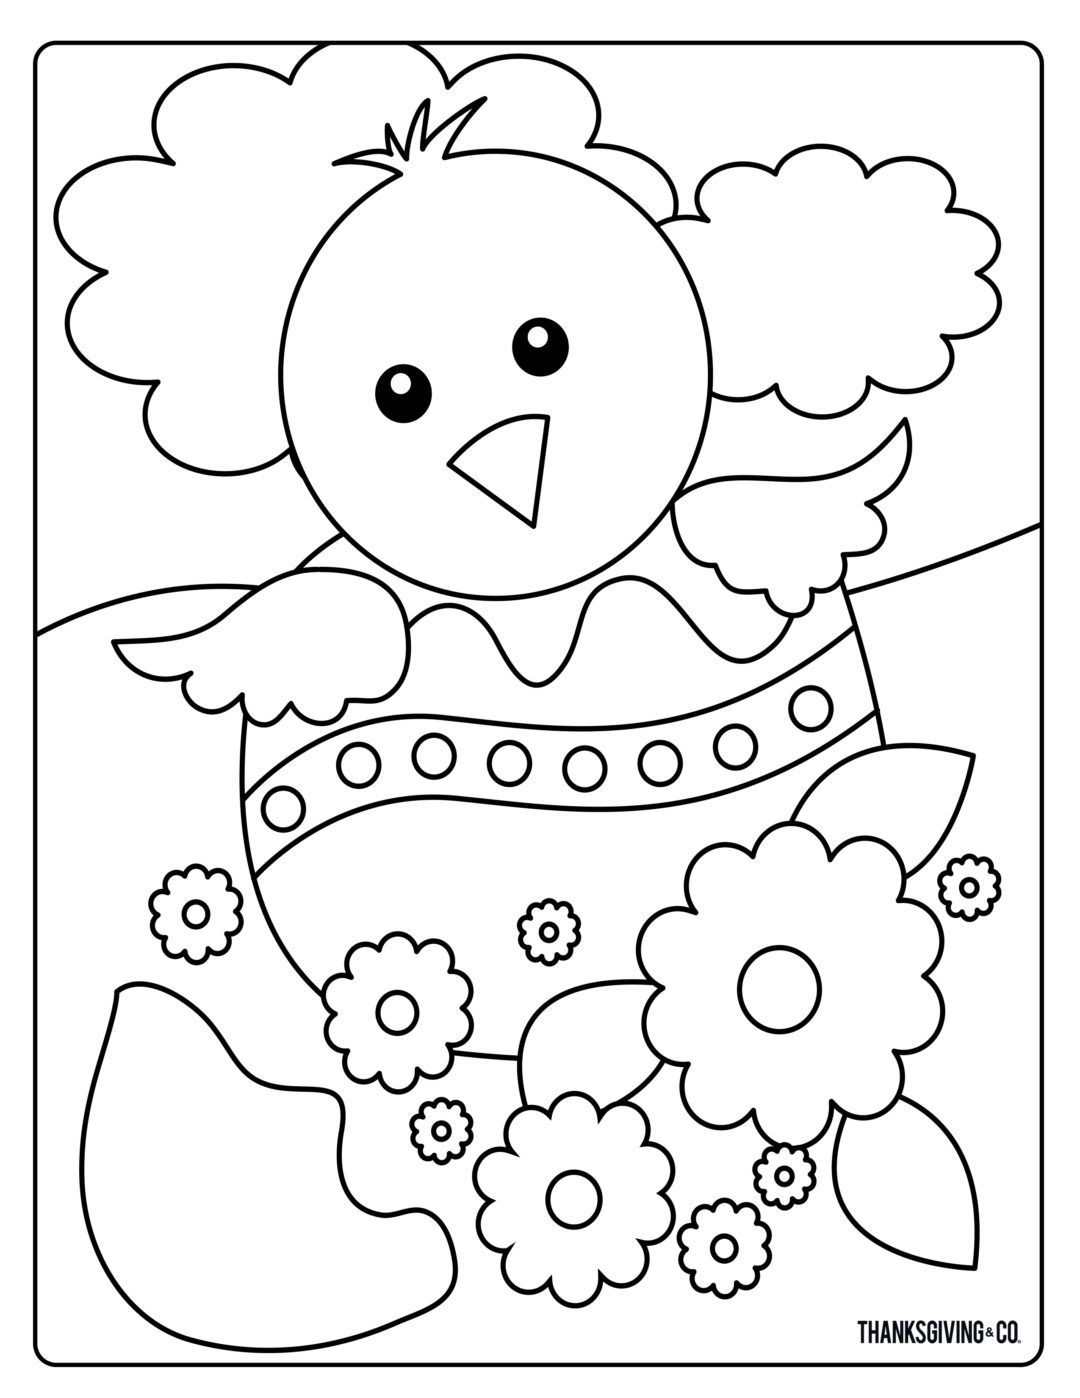 8 Free Printable Easter Coloring Pages Your Kids Will Love In 2020 Easter Coloring Book Easter Coloring Pictures Bunny Coloring Pages